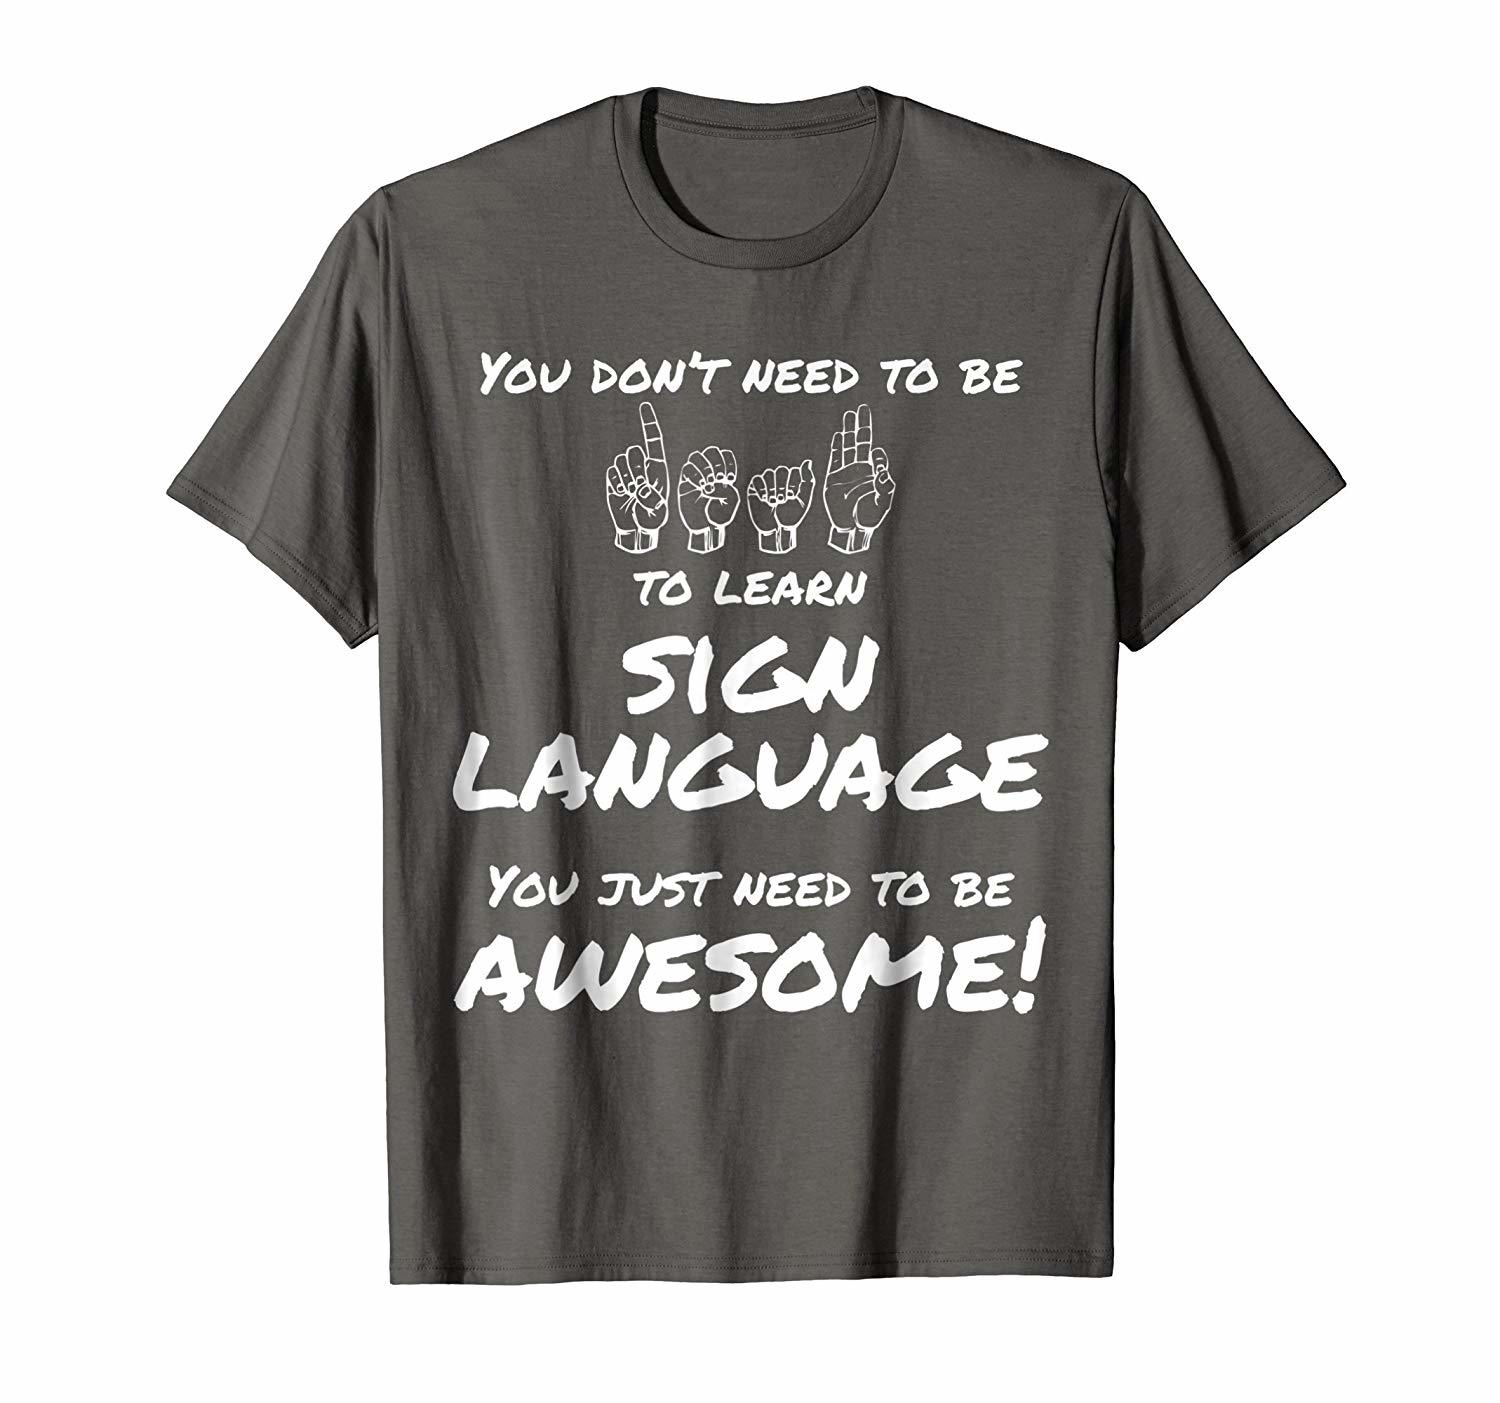 Awesome Learn Sign Language T-Shirt For ASL